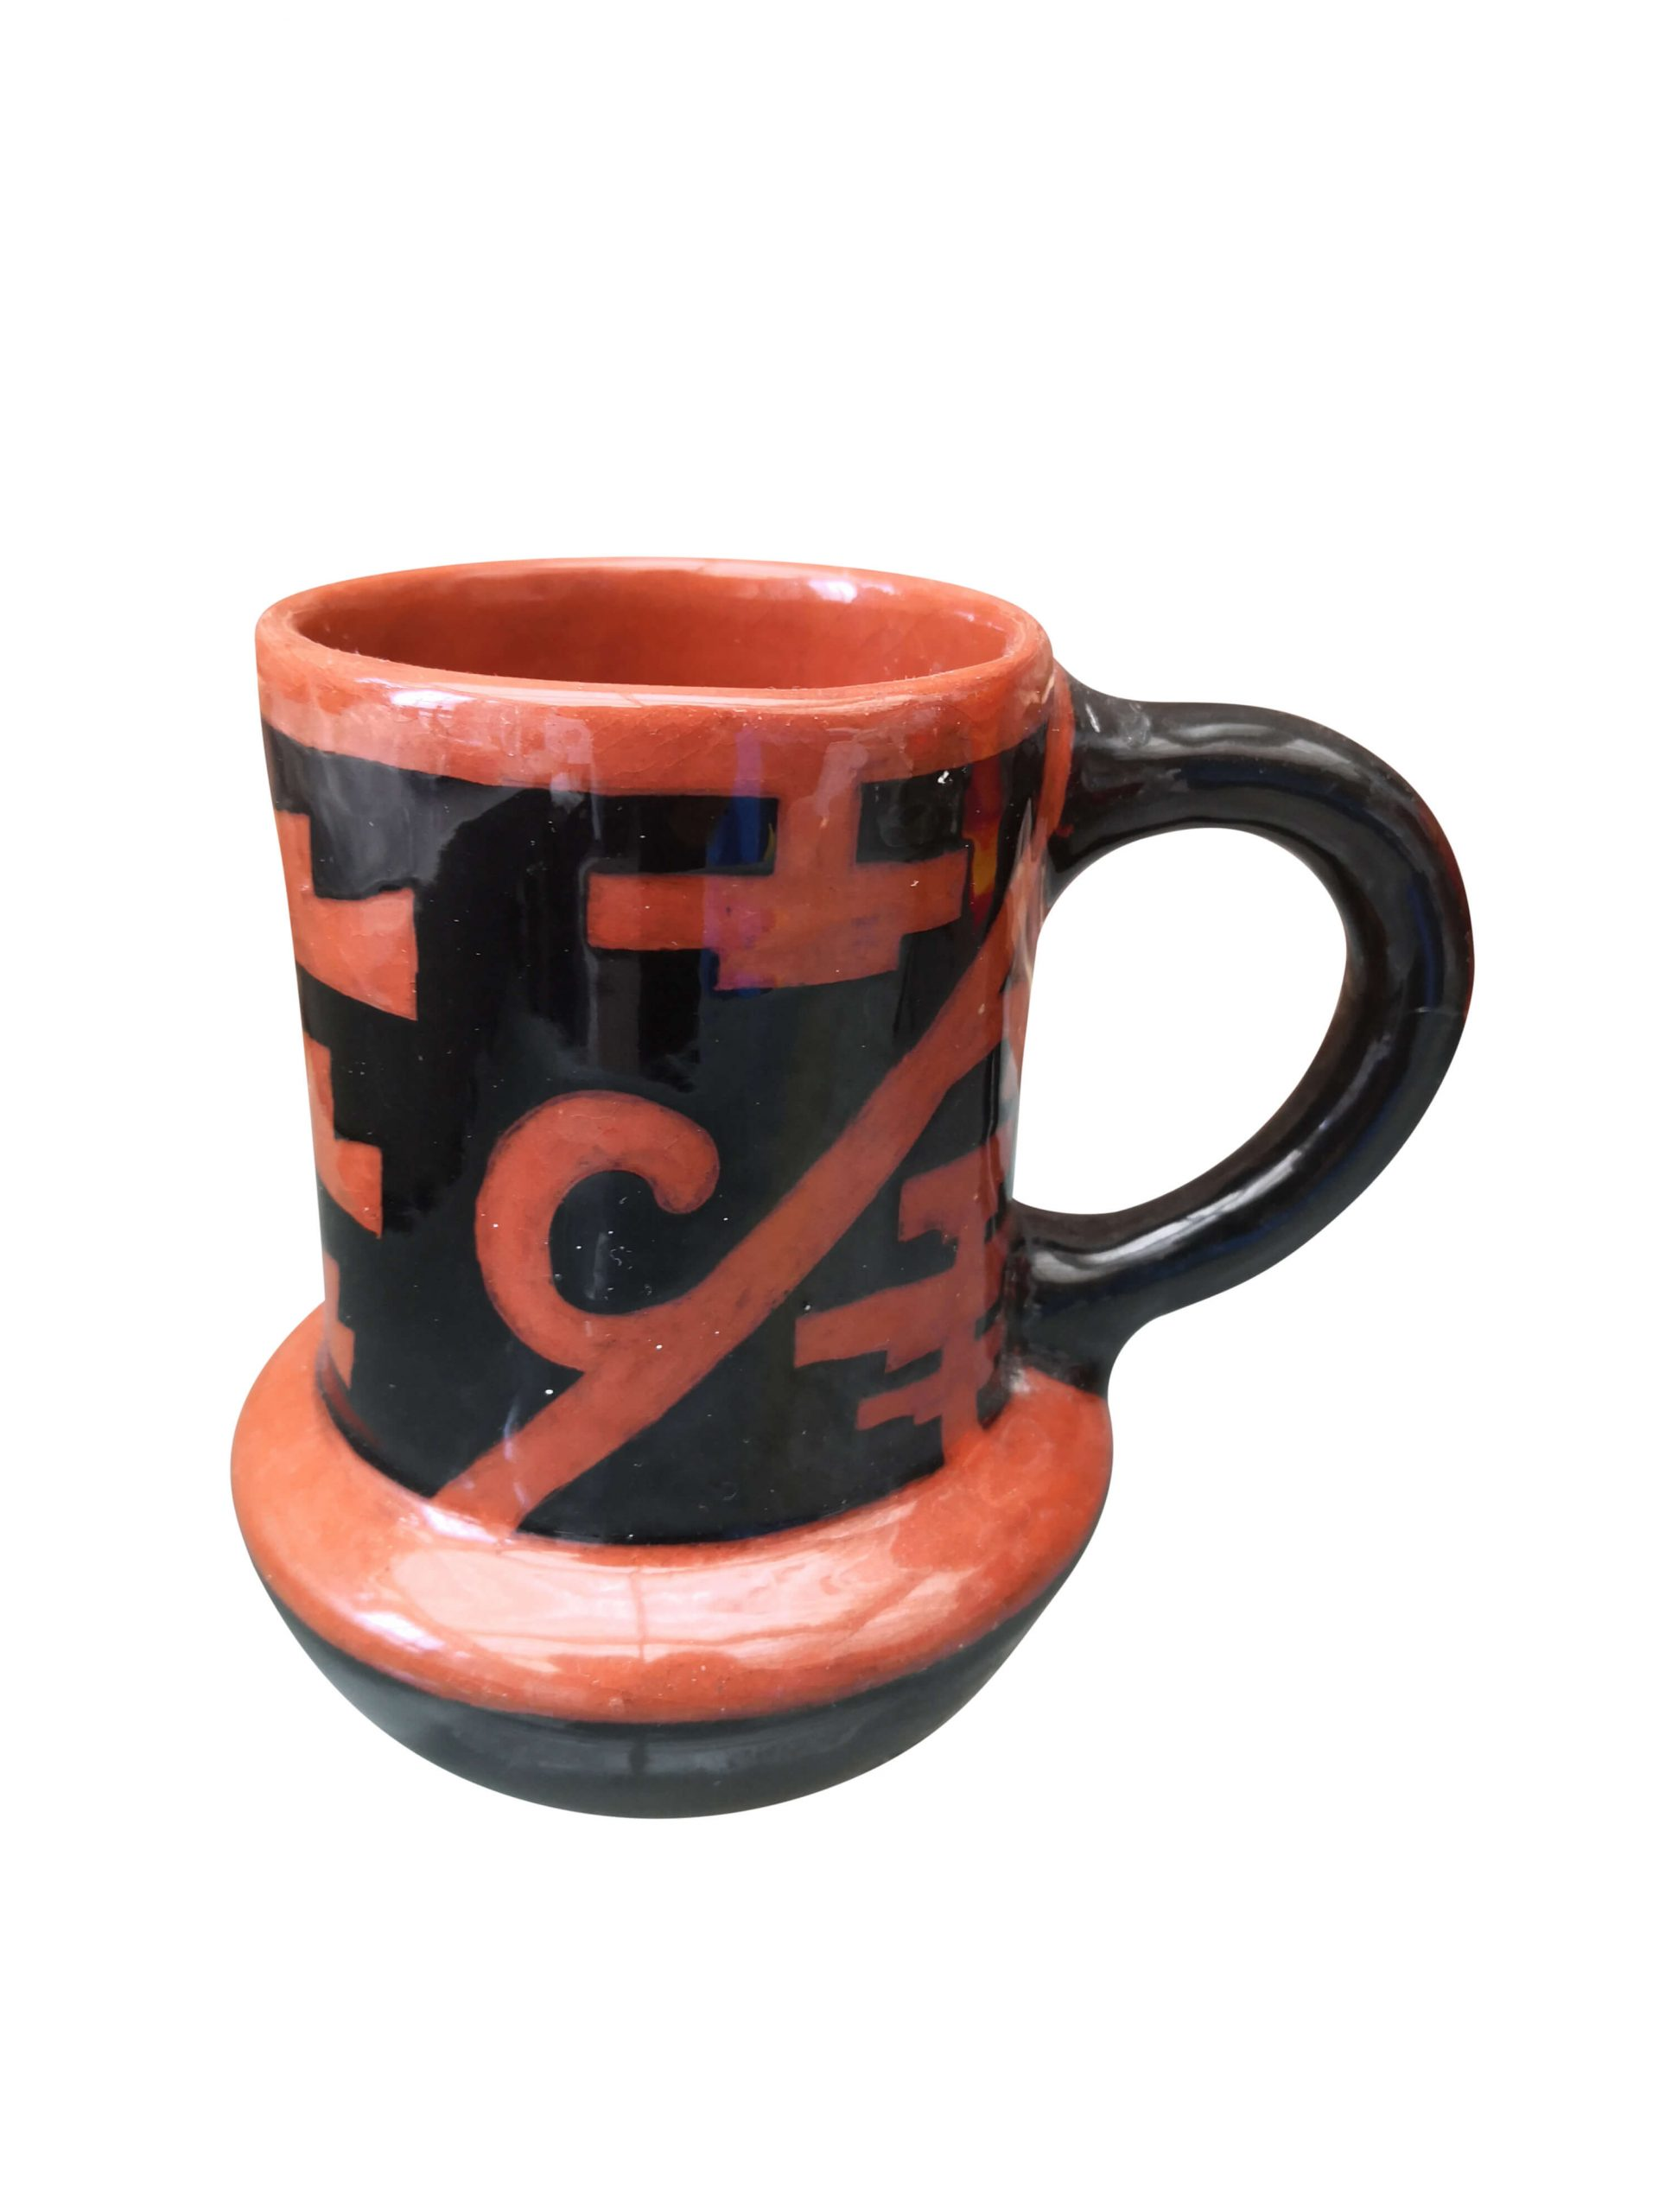 Vintage art pottery Masonic style decoration tankard from a range of Art pottery at Antik Seramika